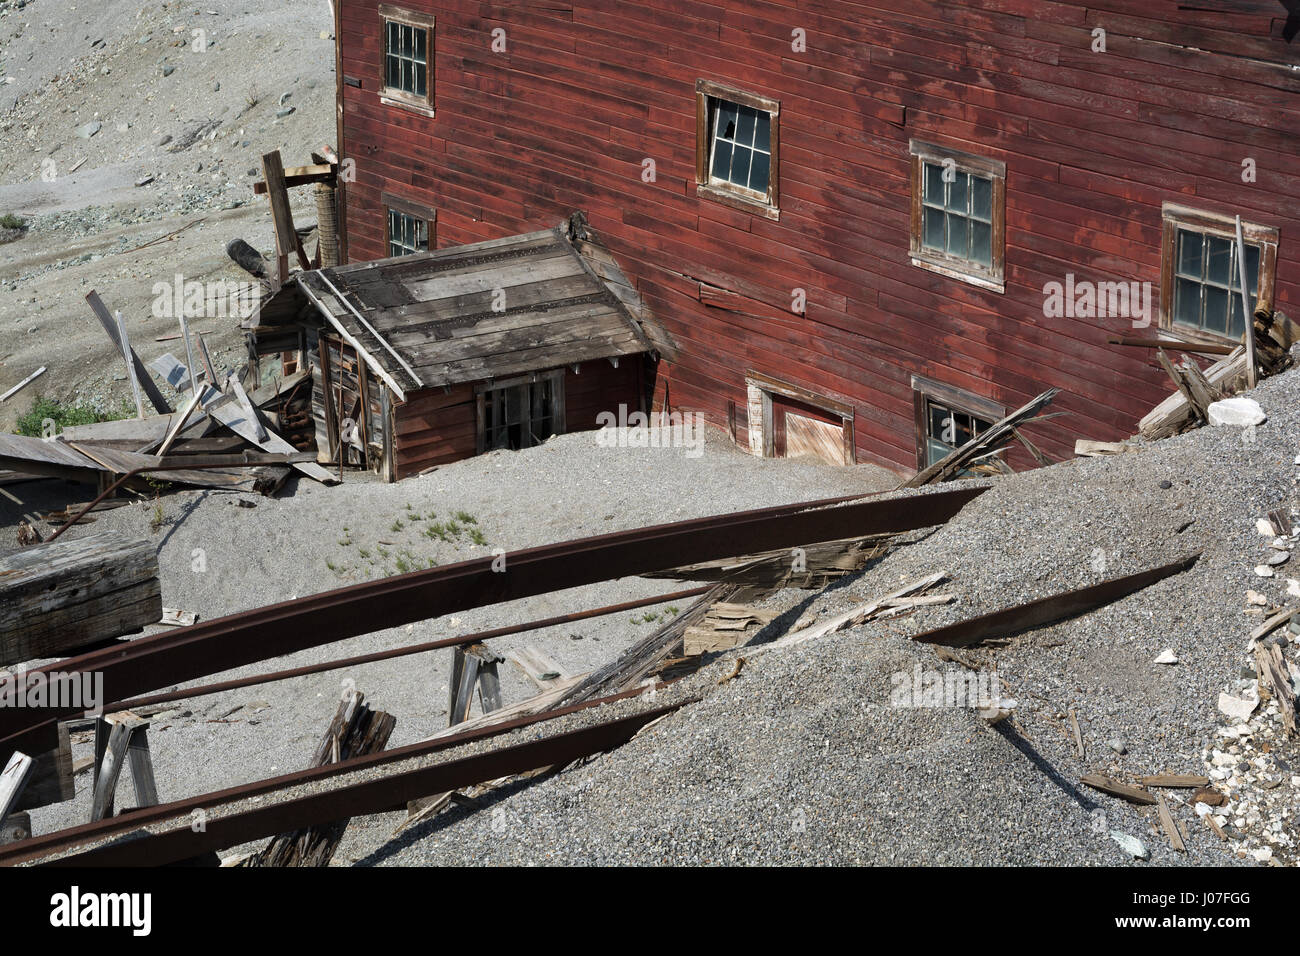 A hundred years of weather has edoded the side of a hill on which a multistory red building is slowly decaying. - Stock Image